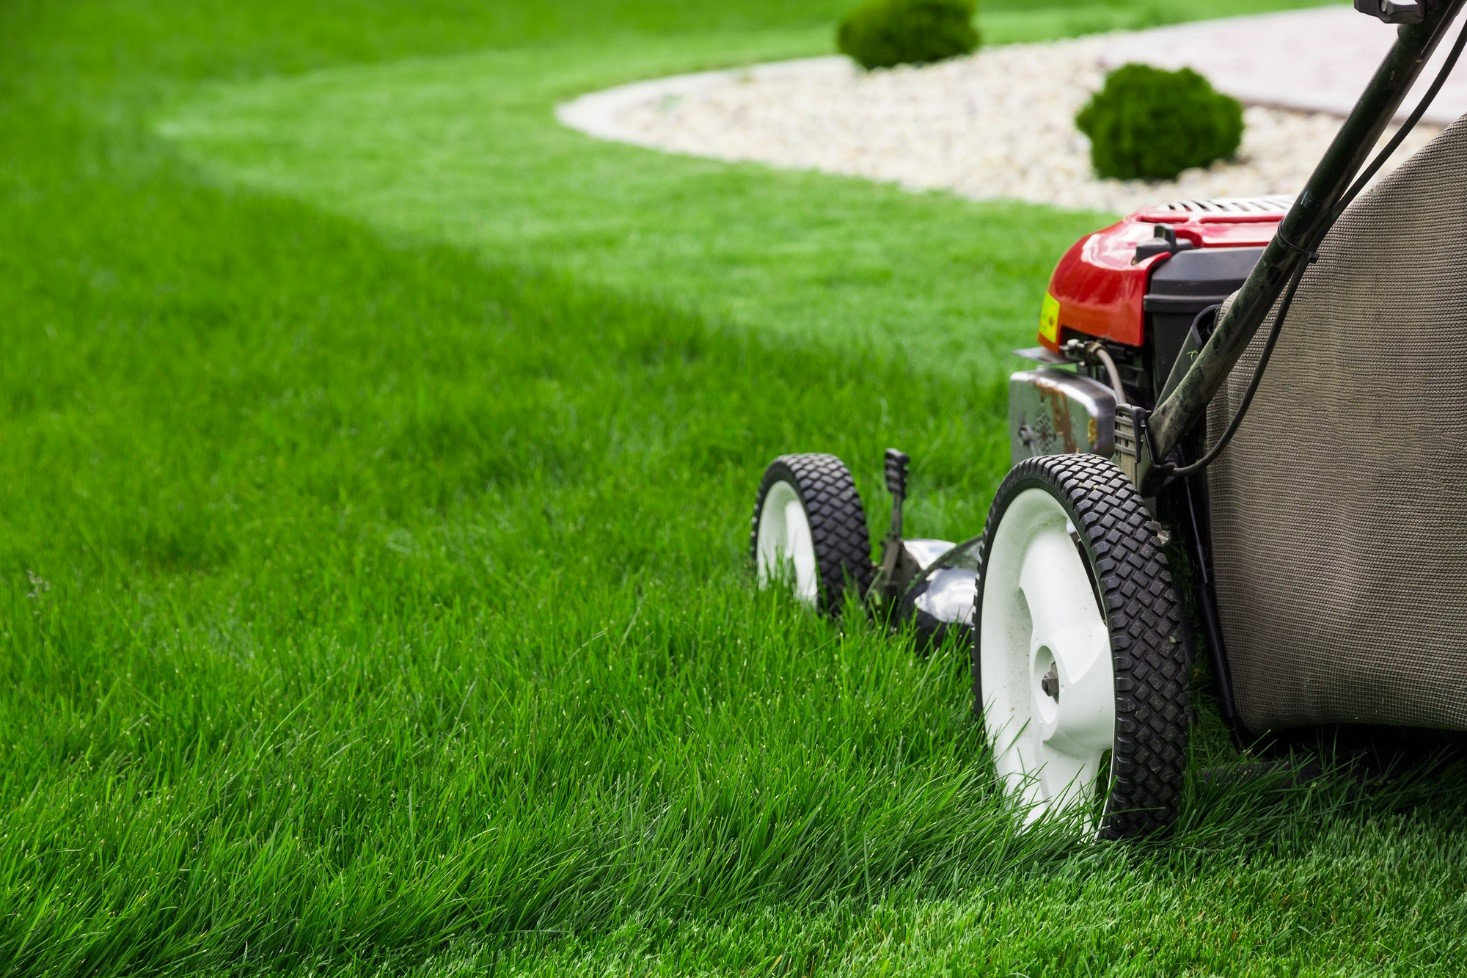 The Reasons That Make Lawn Care Essential to Your Landscaping Needs